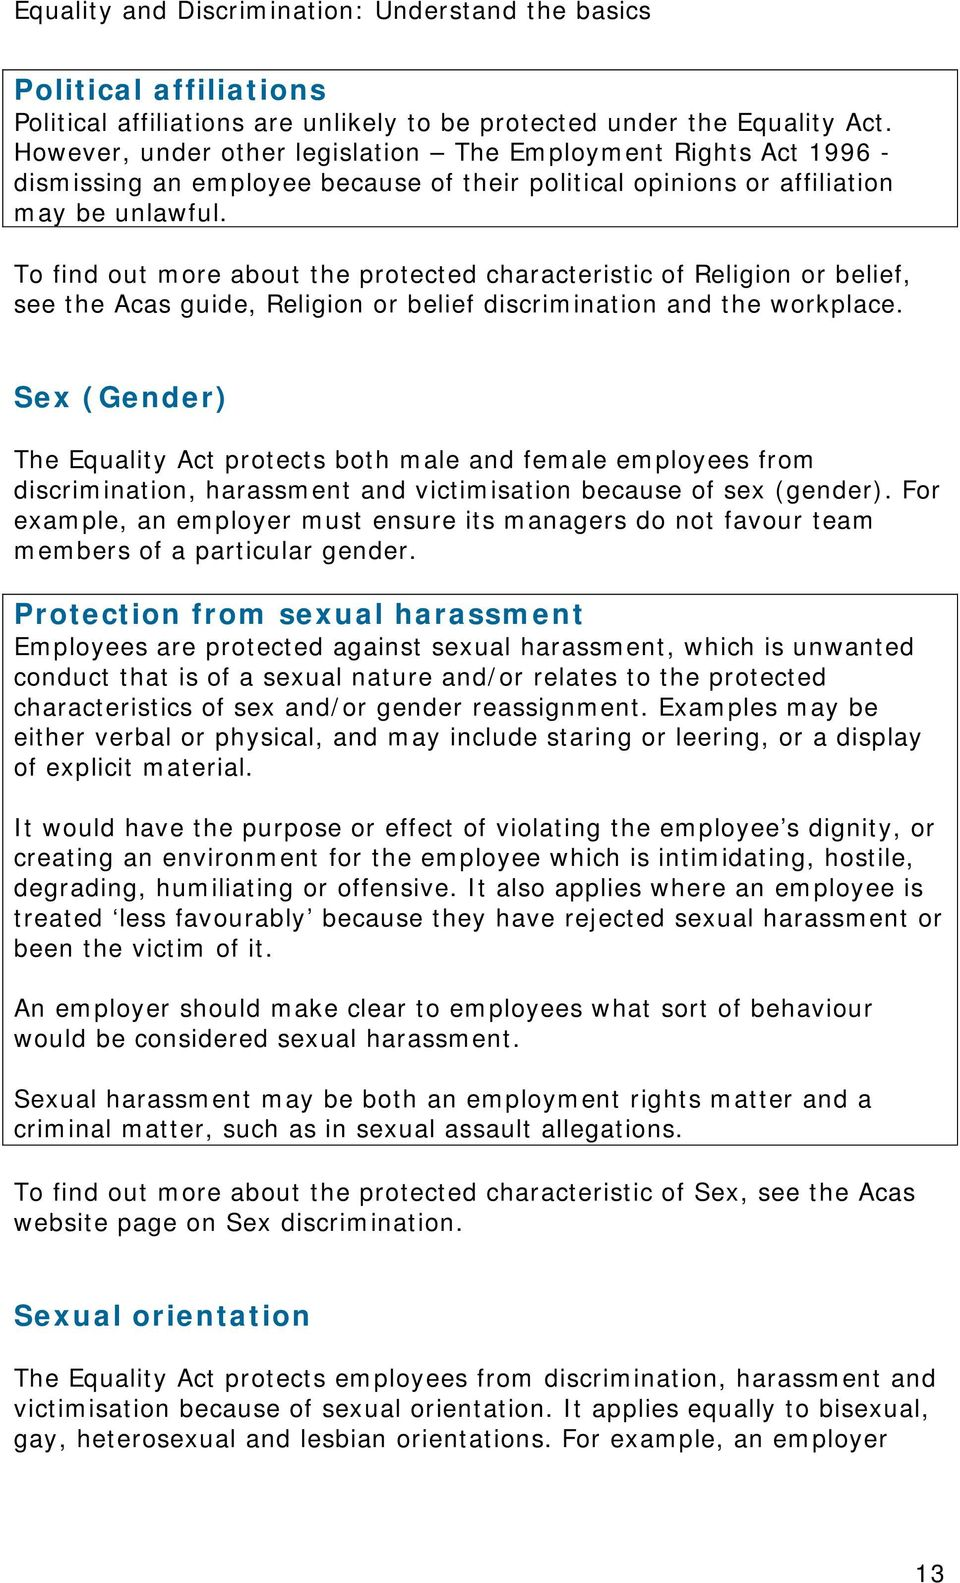 Equality sexual orientation regulations 2019 gmc